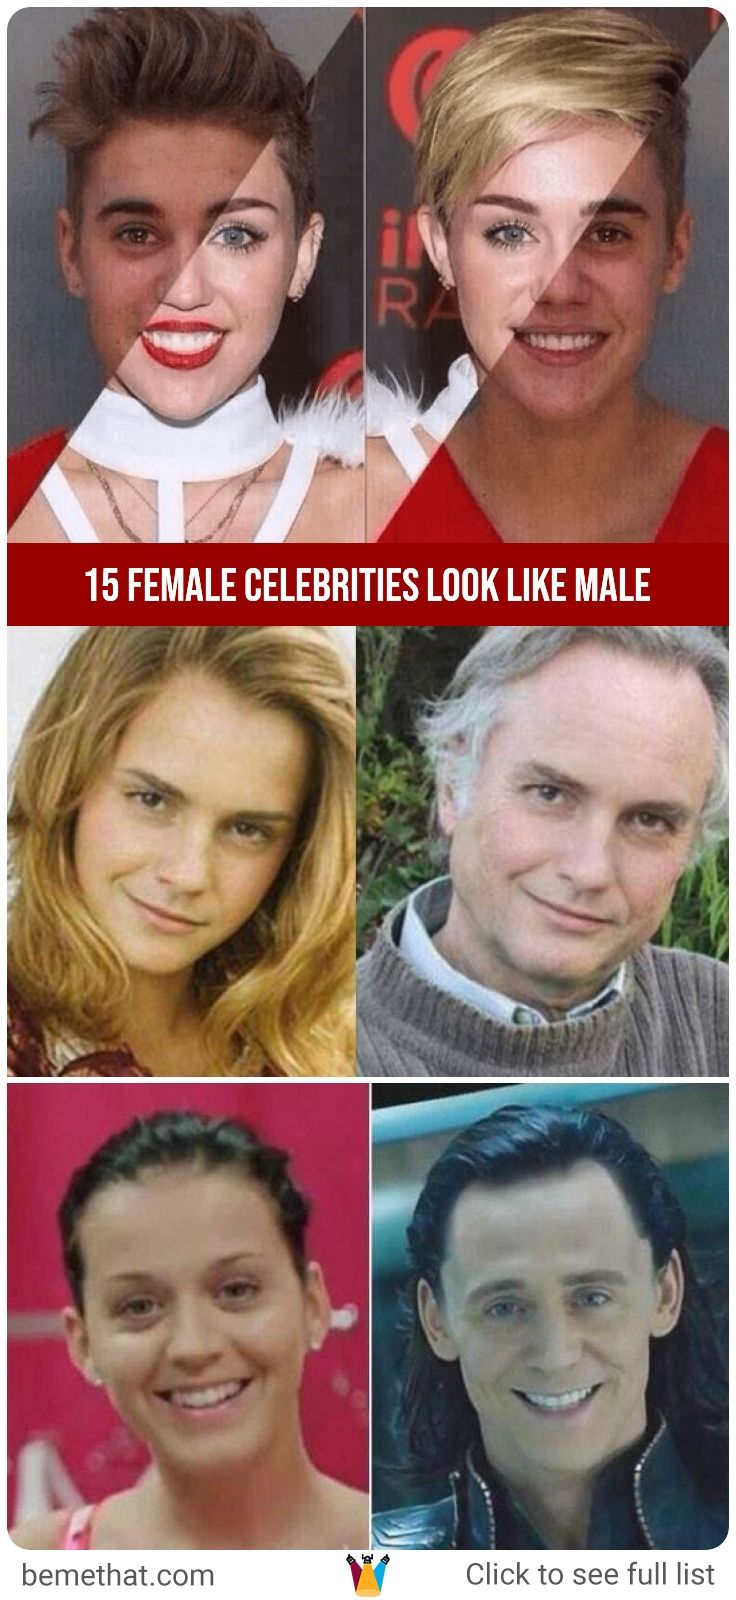 Male-like female celebrities